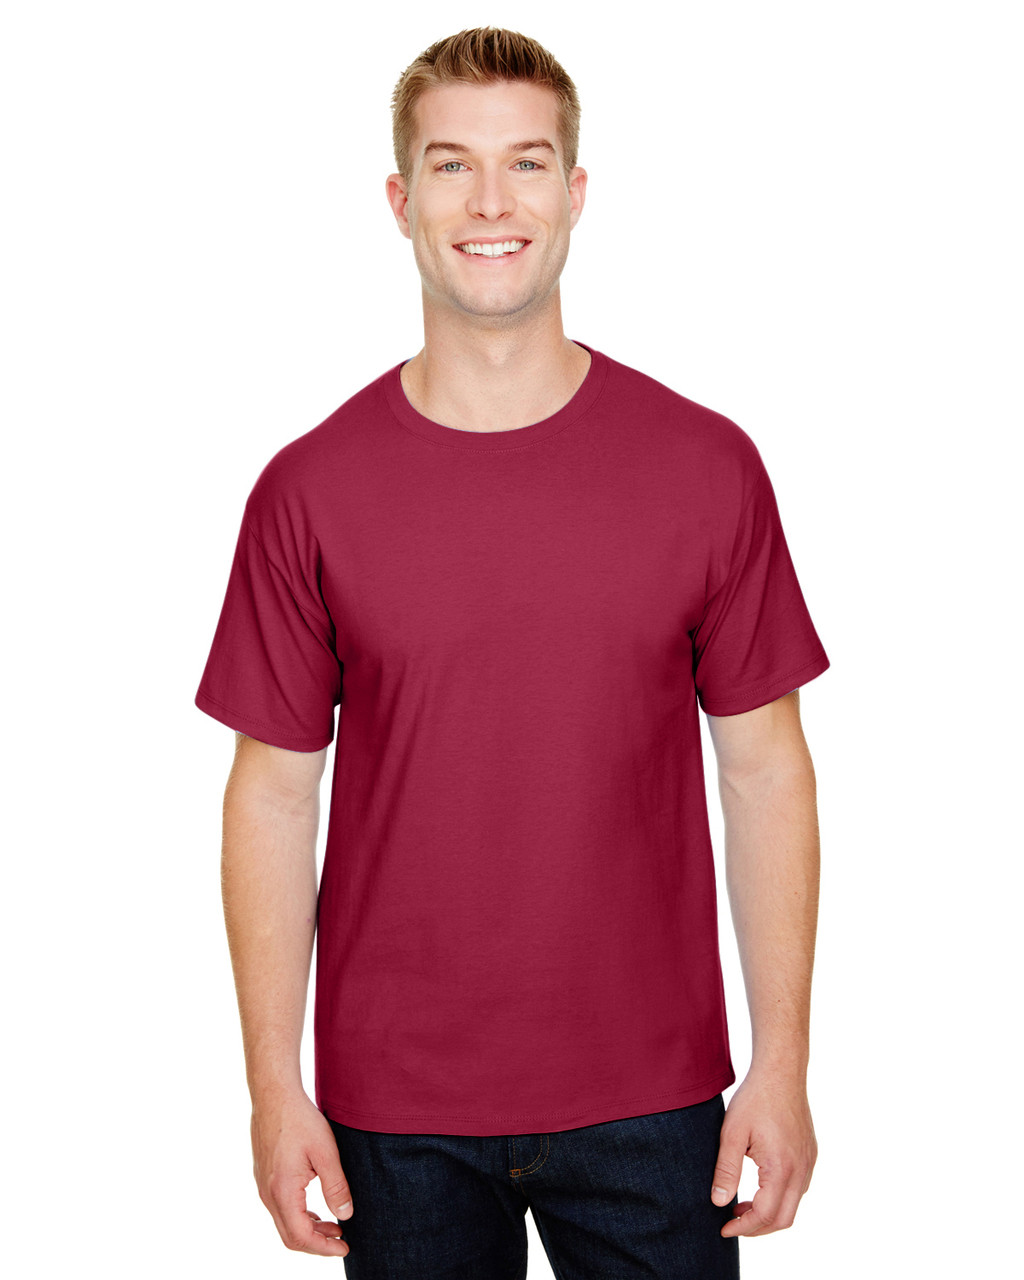 True Cardinal - CP10 Champion Adult Ringspun Cotton T-Shirt | BlankClothing.ca